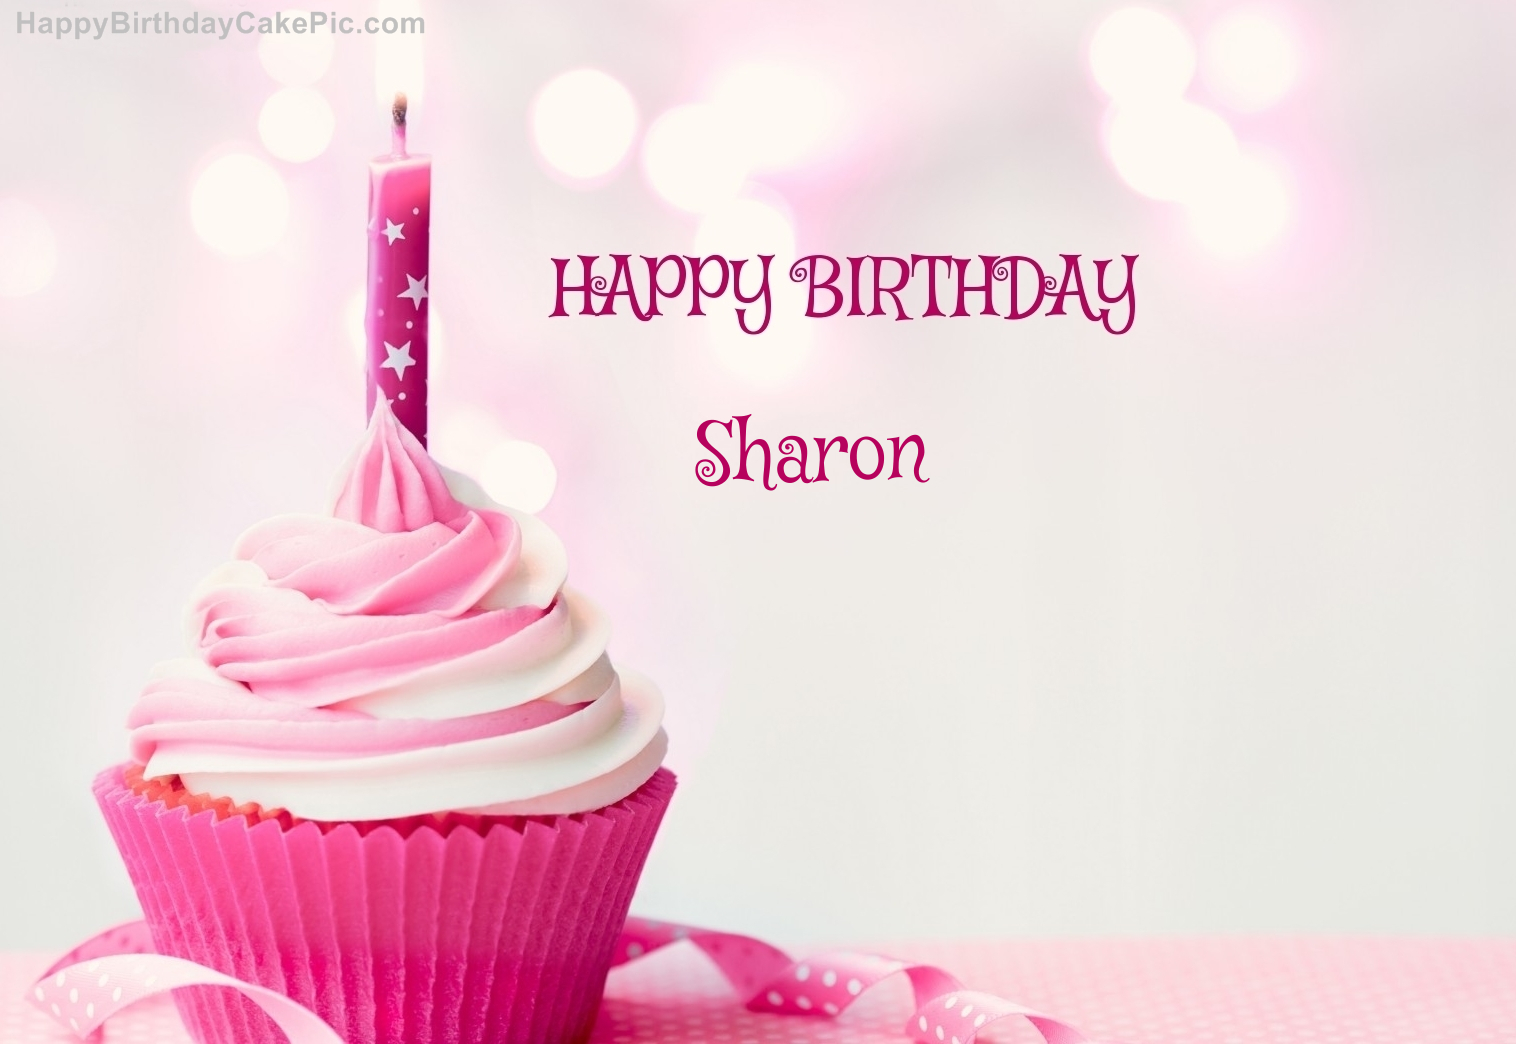 Happy Birthday Cupcake Candle Pink Cake For Sharon